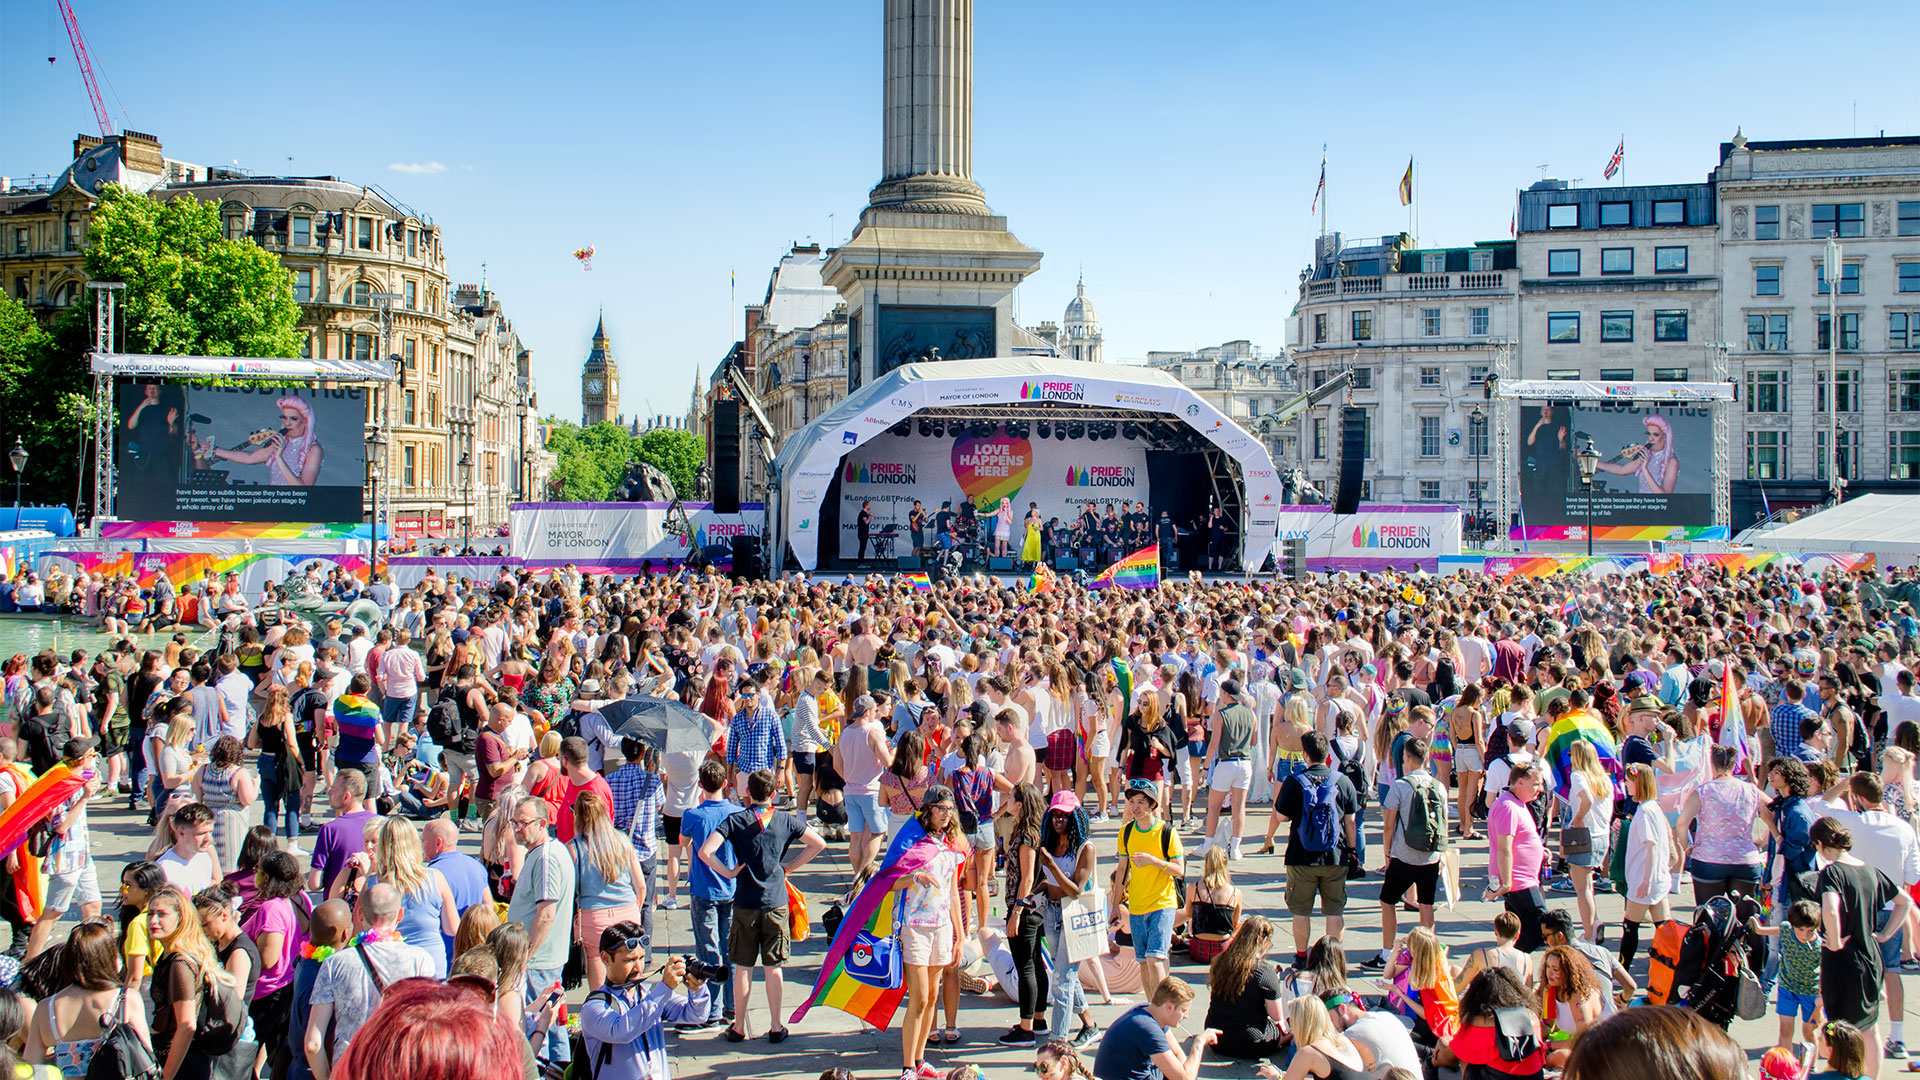 Crowds gather in front of the Trafalgar Square stage during Pride in London 2017.